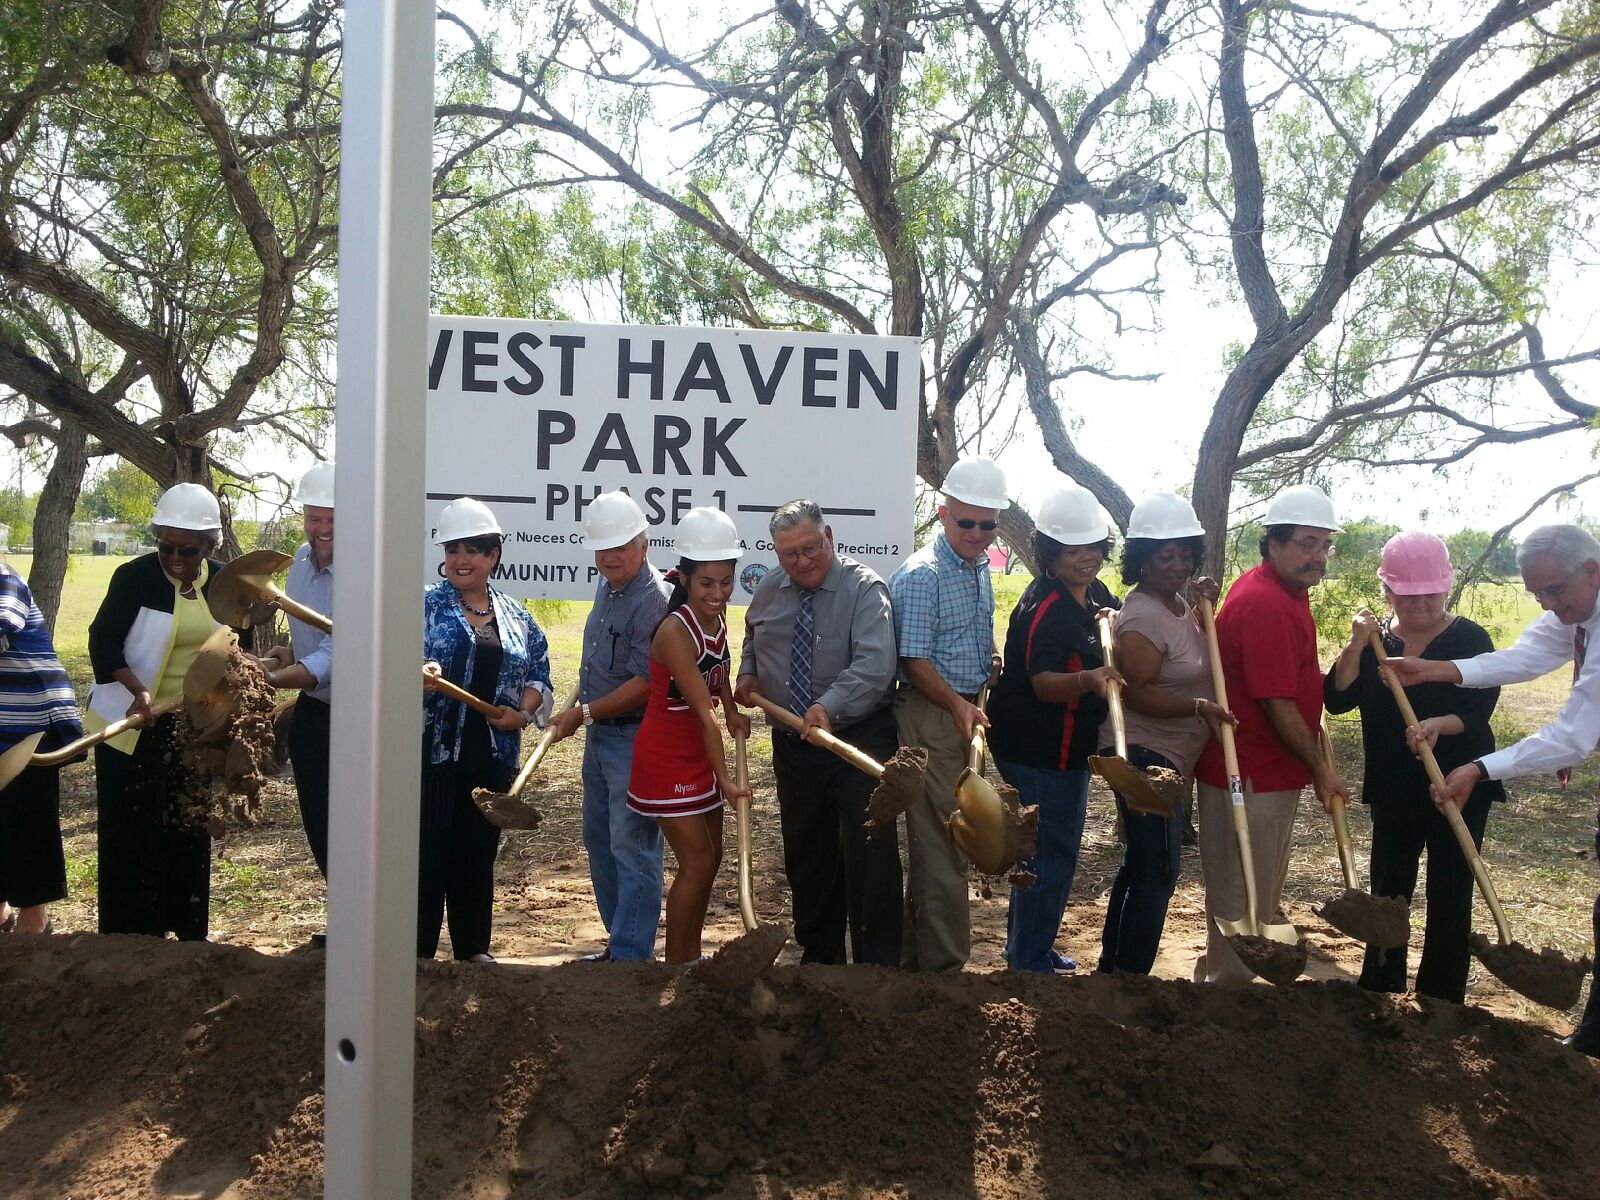 Groundbreaking Ceremony for Westhaven Park